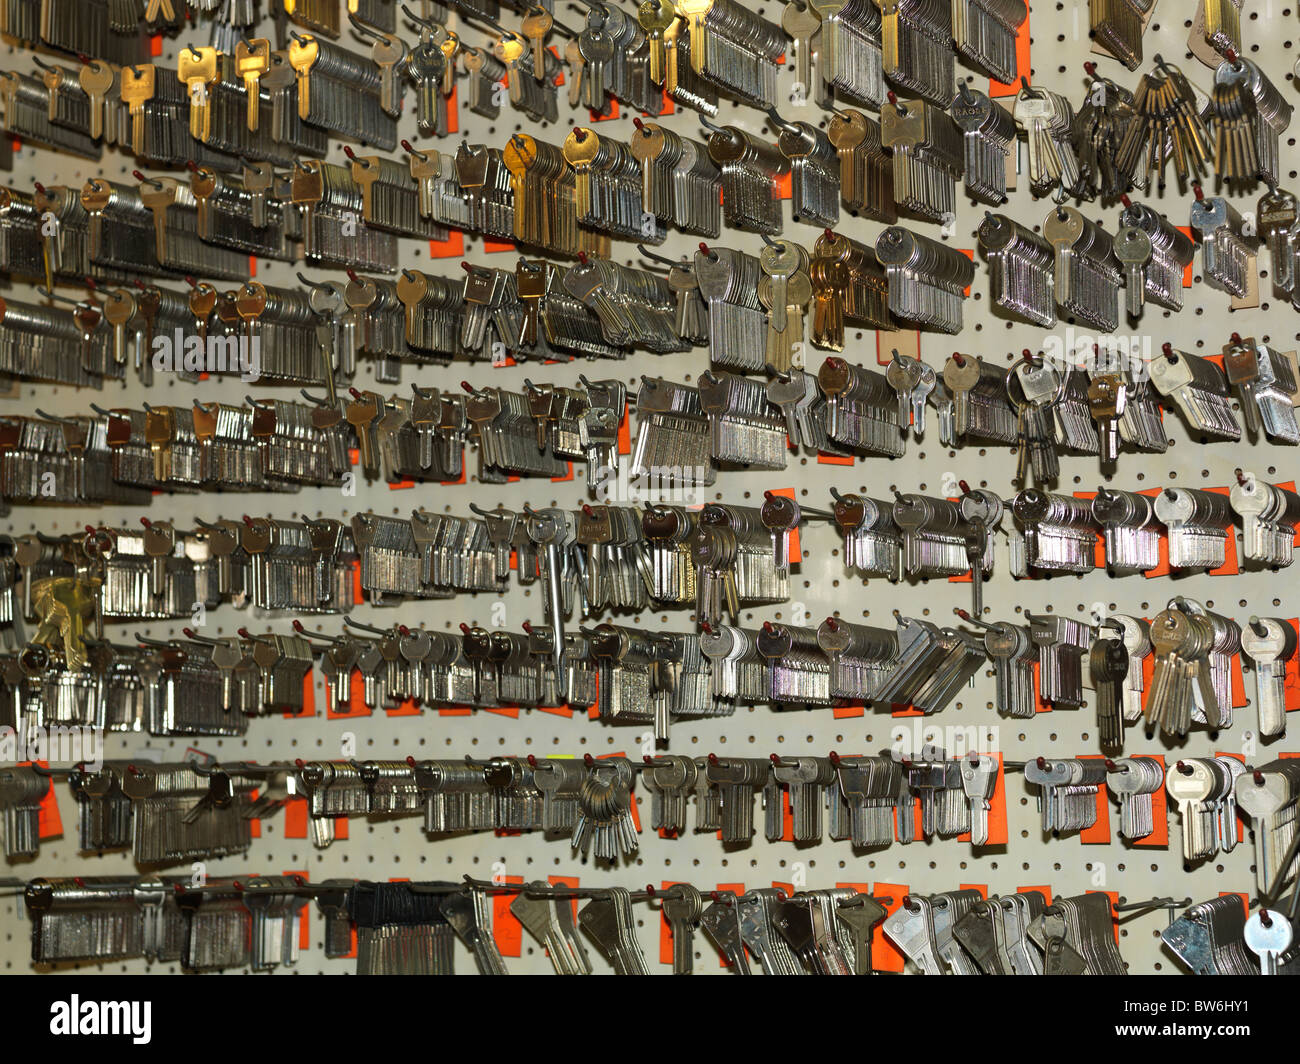 Lots of uncut keys on board - Stock Image